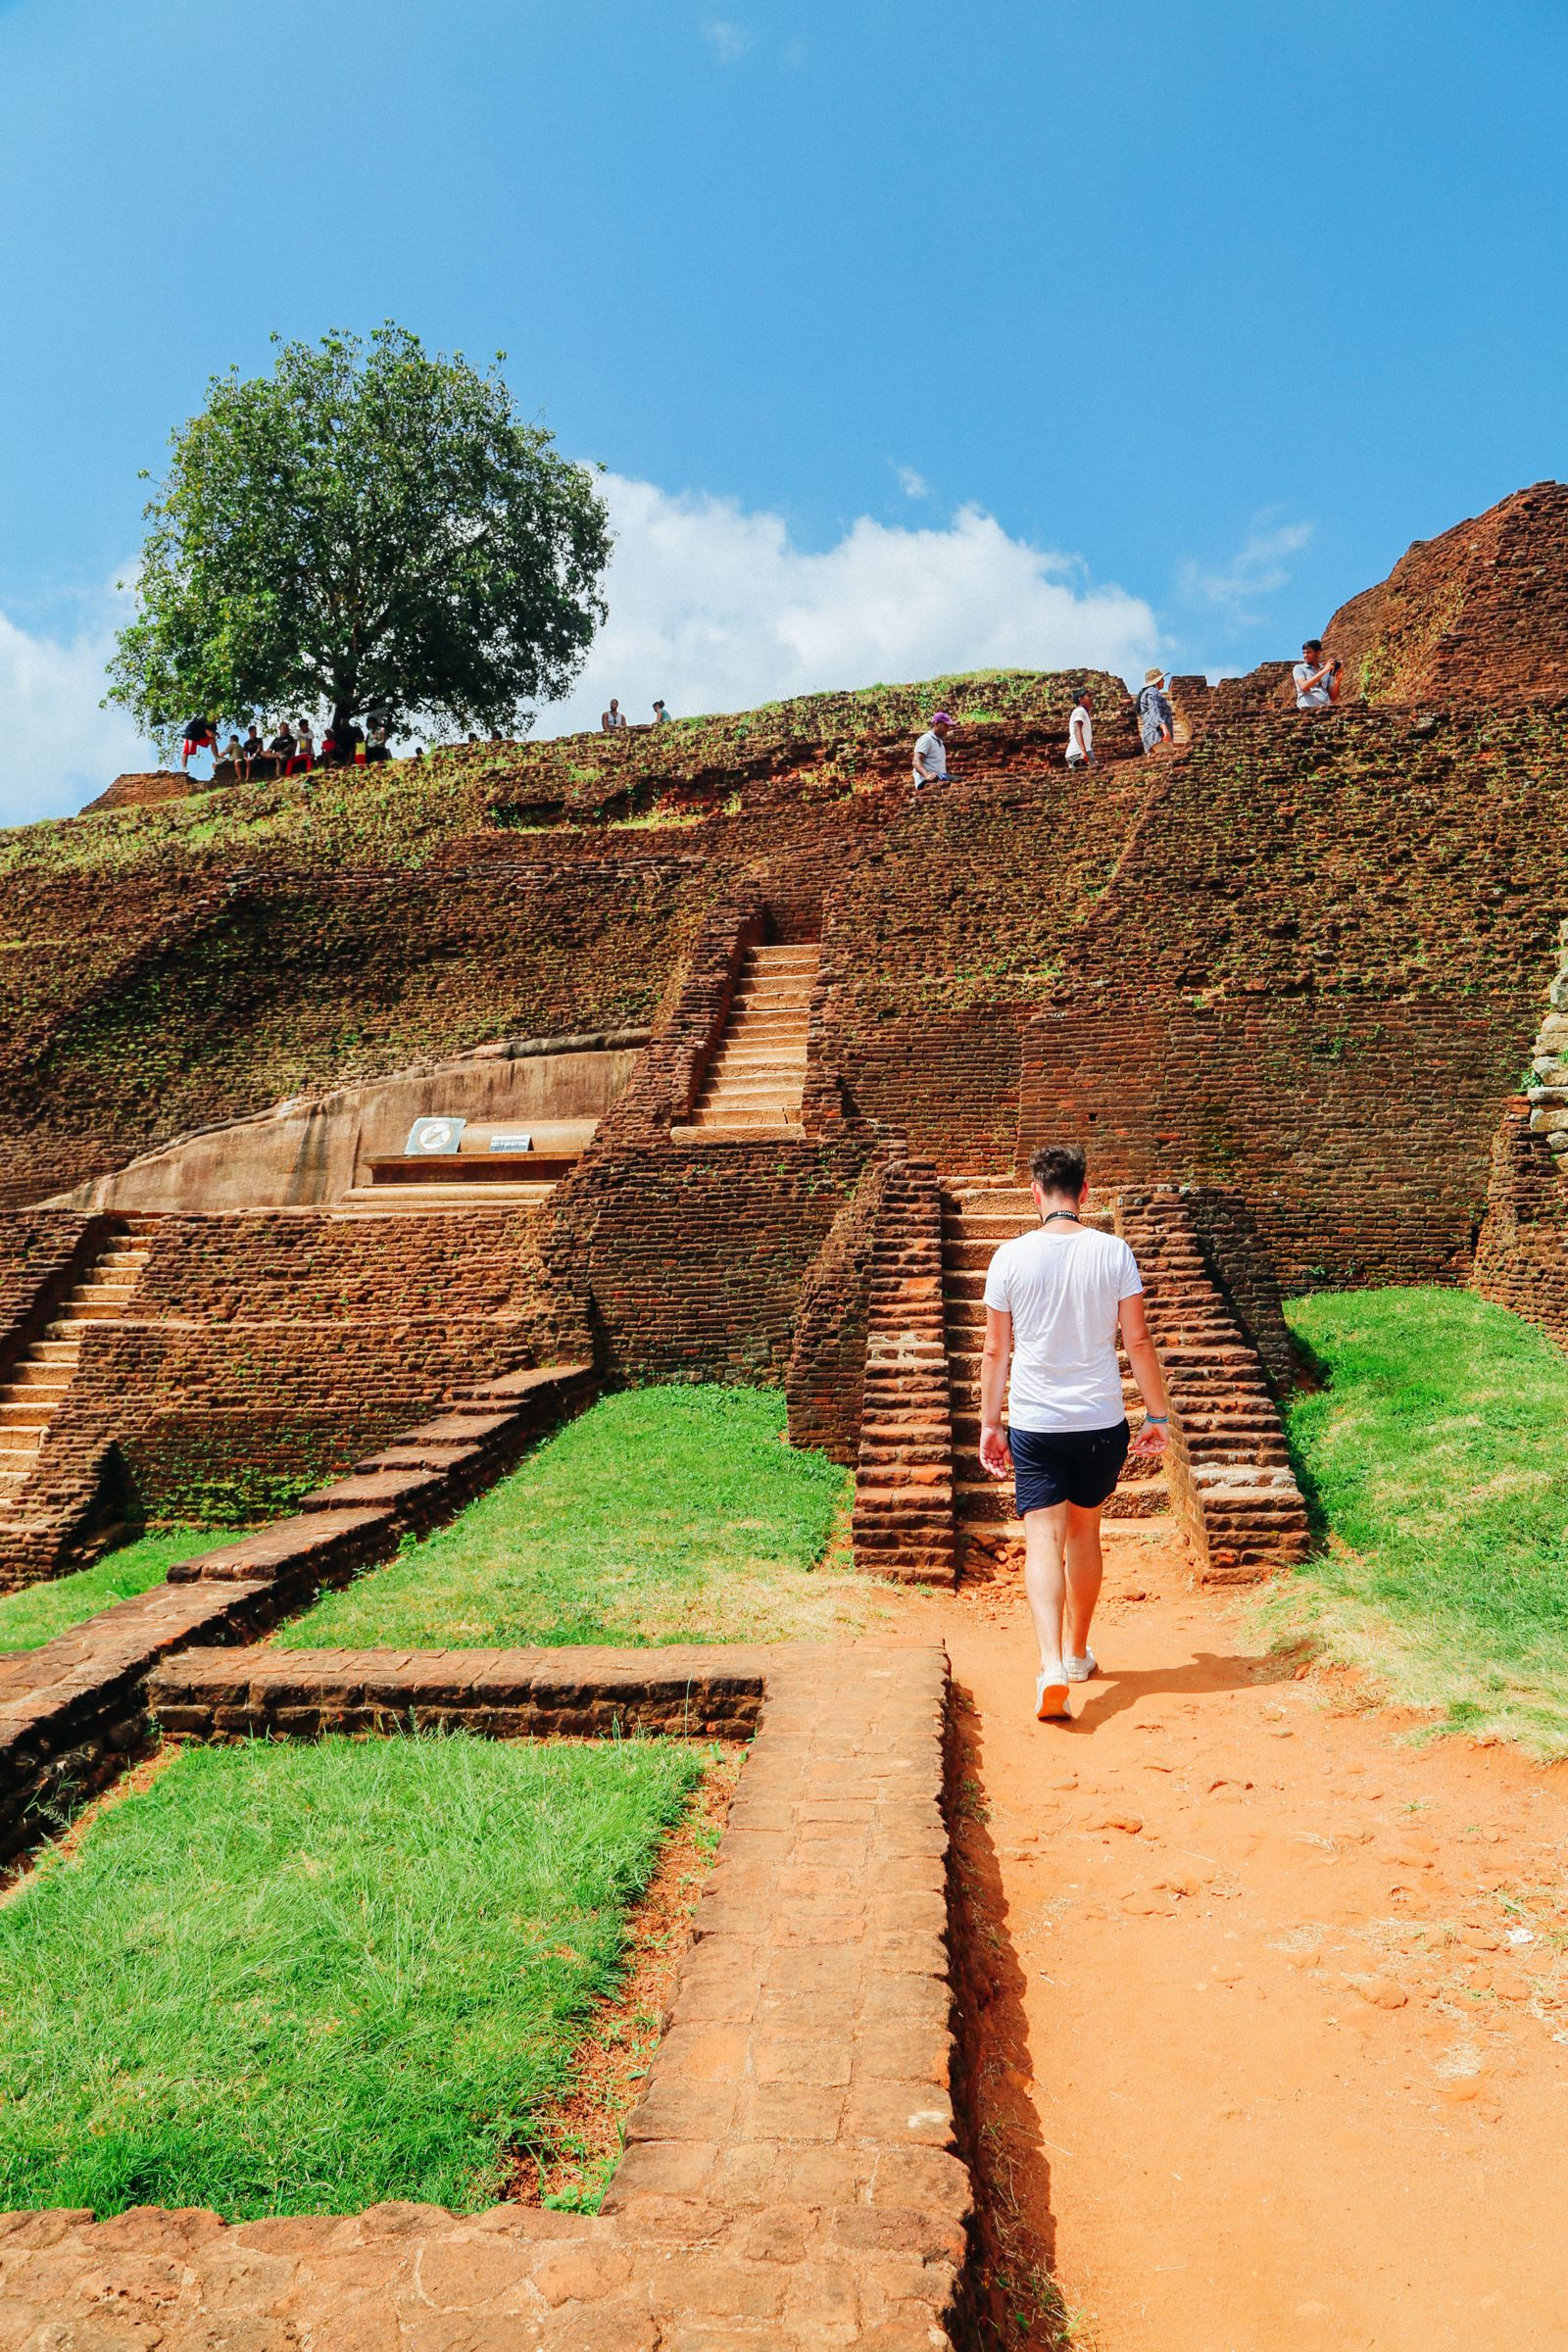 The Complete Guide To Climbing Sri Lanka's UNESCO World Heritage Site Of Sigiriya - Lion Rock (59)